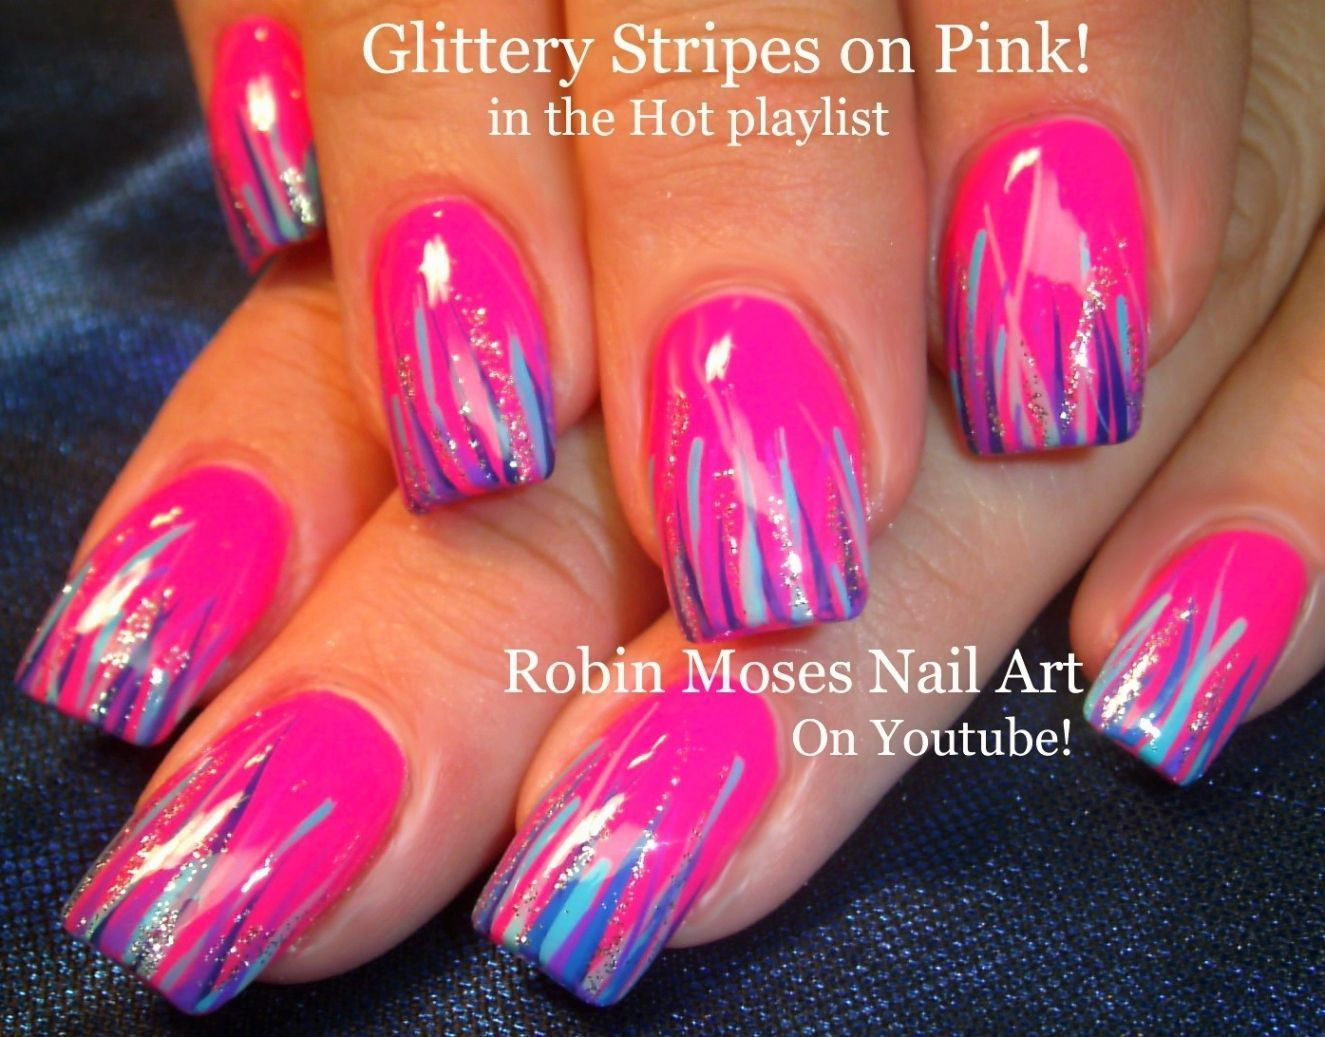 Robin Moses Nail Art: Easy Neon Pink Summer Nails Up And Perfect in ...